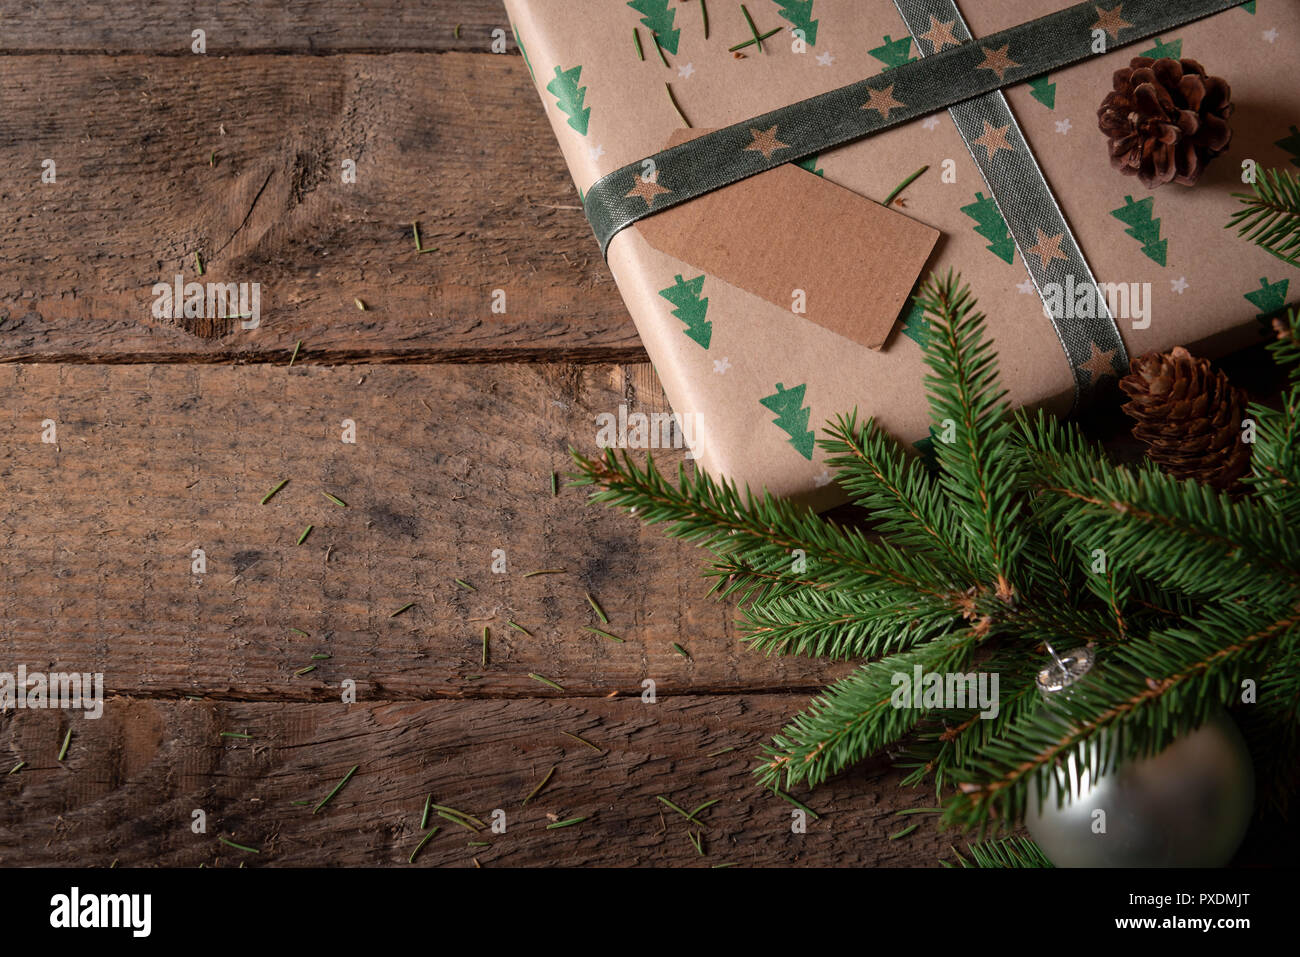 Frohe Weihnachten Xhosa Tag Tradition Stockfotos Tag Tradition Bilder Alamy